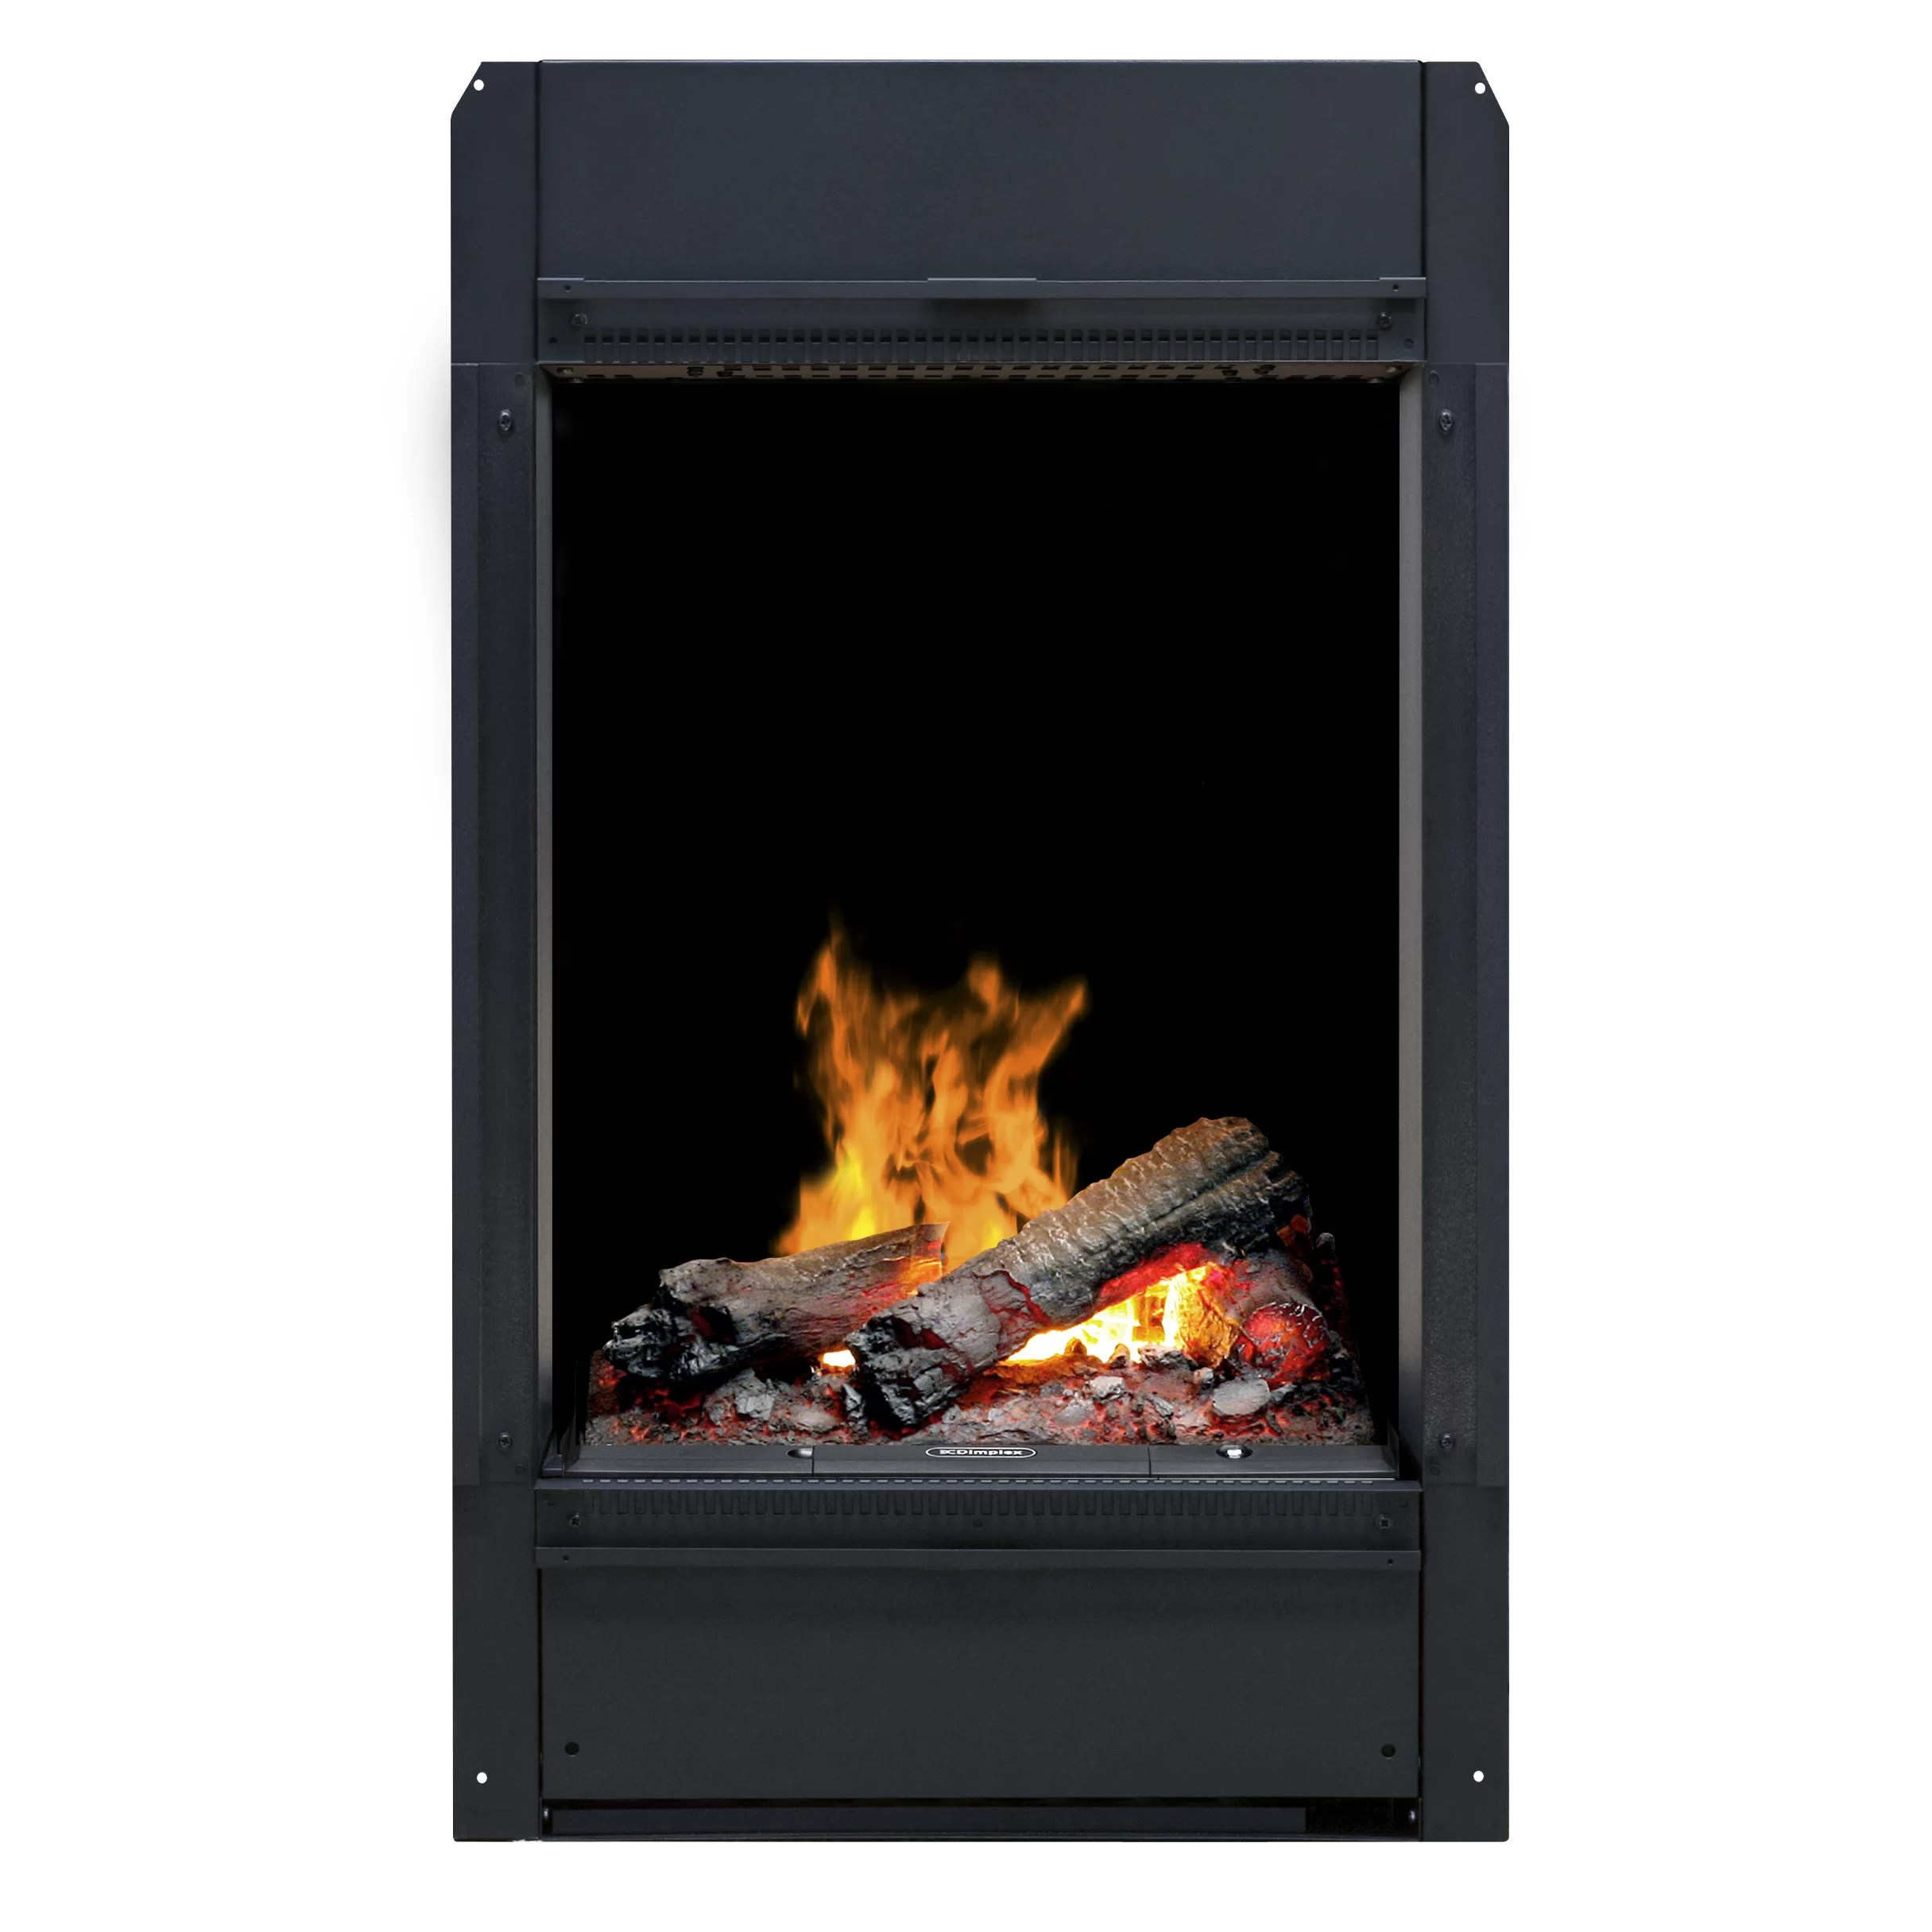 Dimplex Opti Myst Pro Wall Mount Electric Fireplace